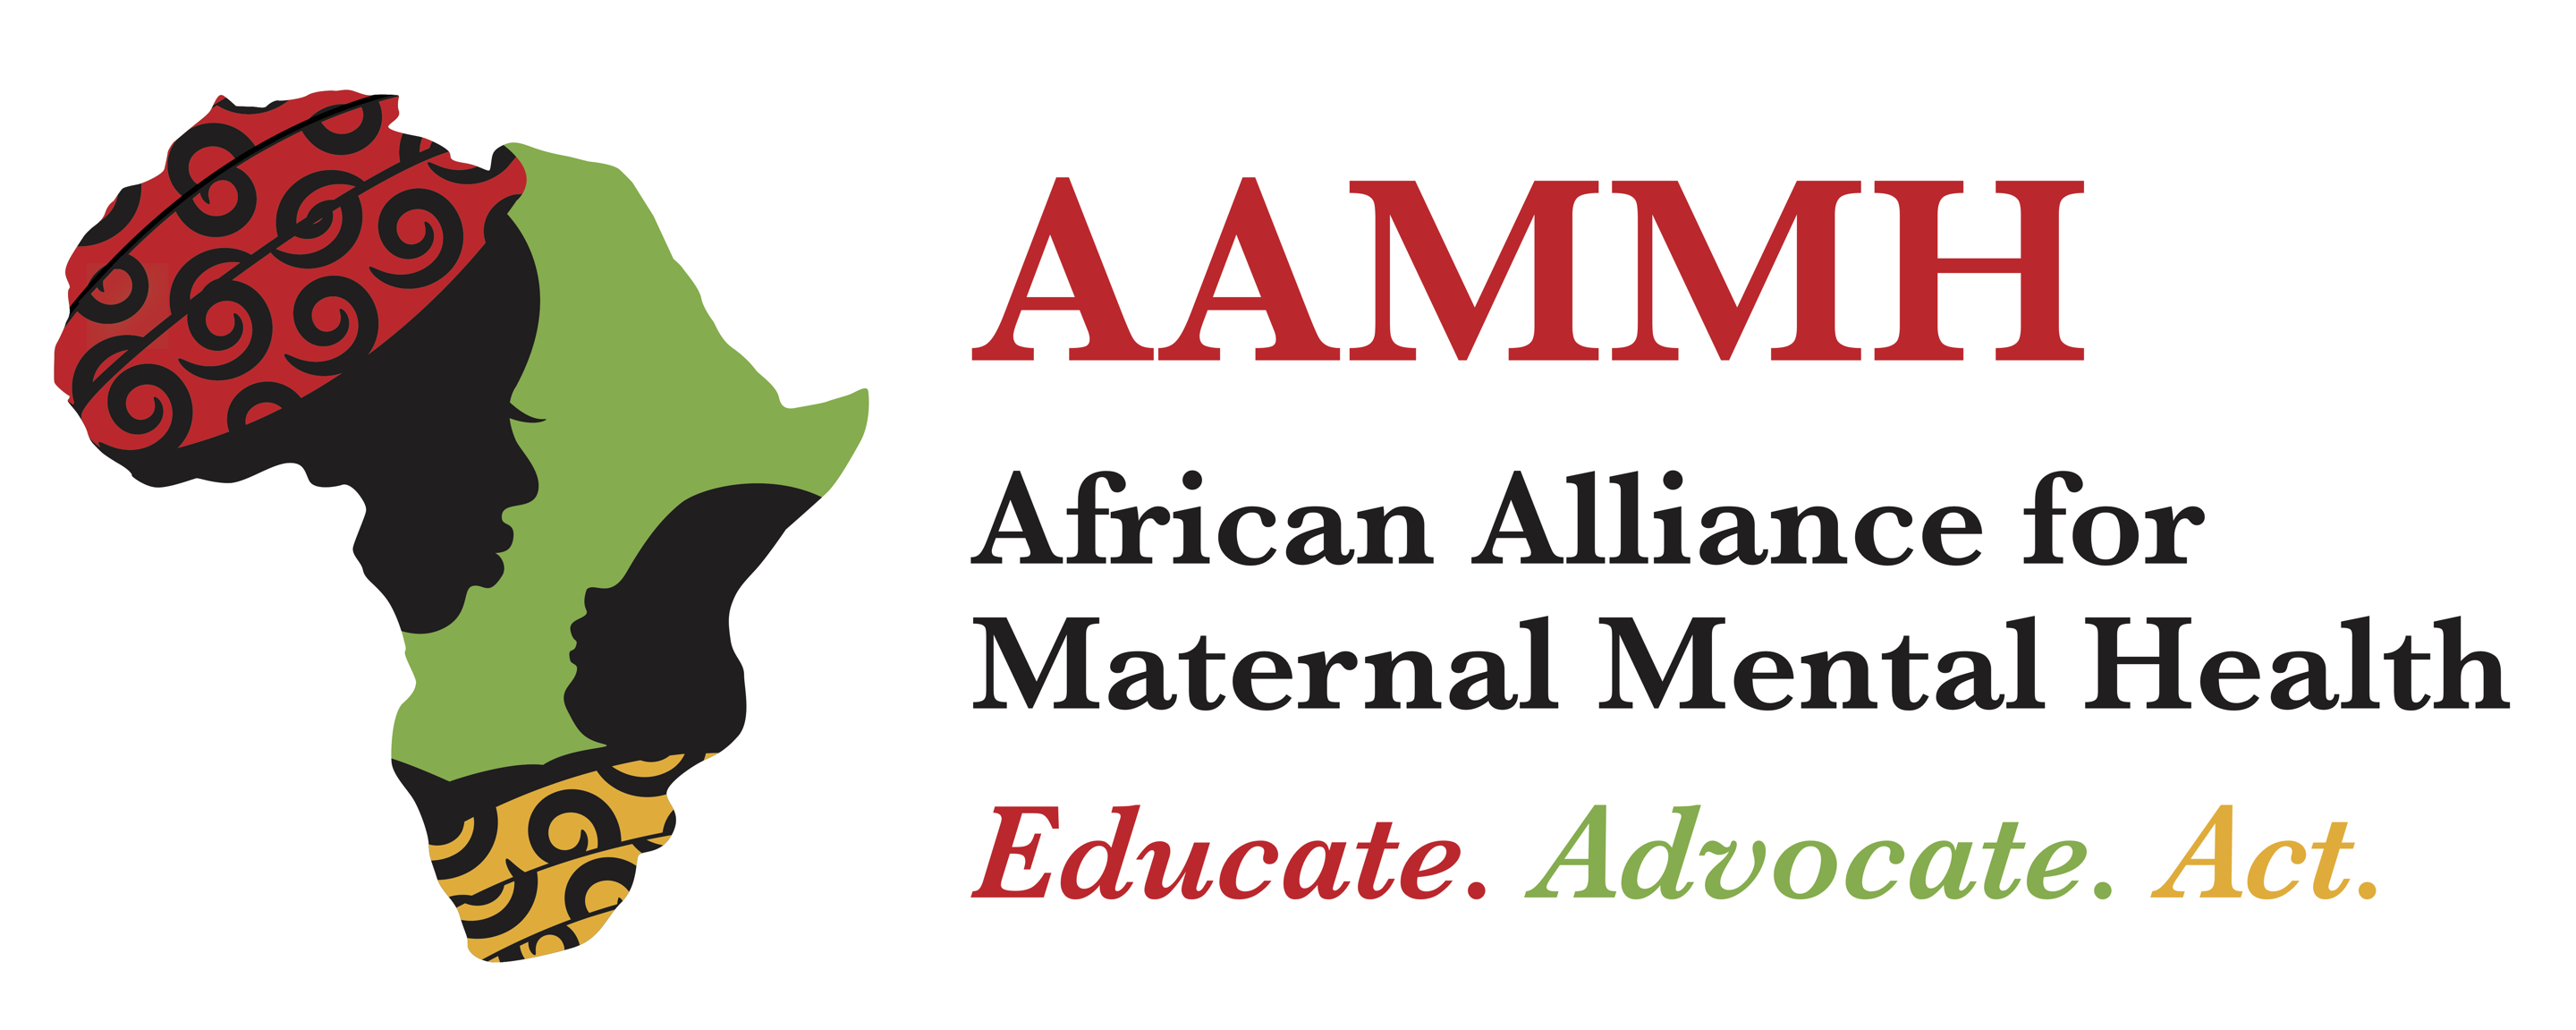 African Alliance for Maternal Mental Health